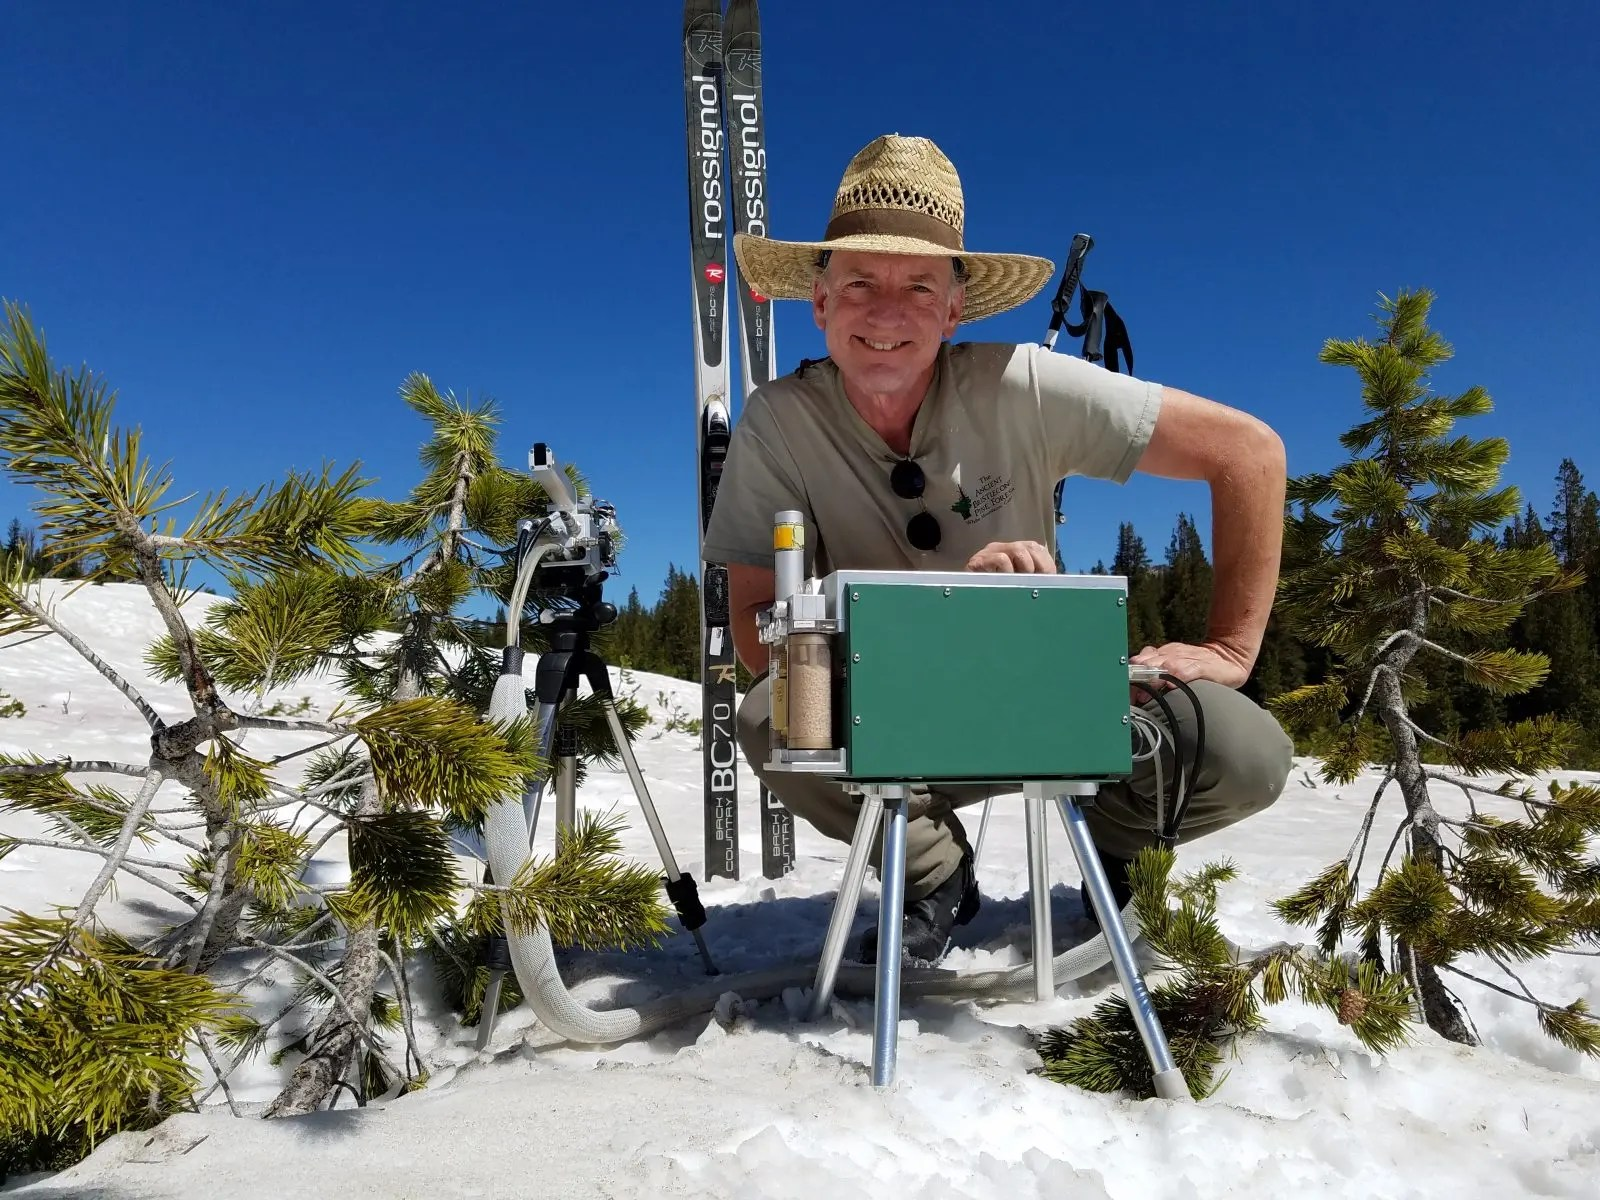 Loik next to his skis in snow with young pines by instruments he uses to study plant productivity